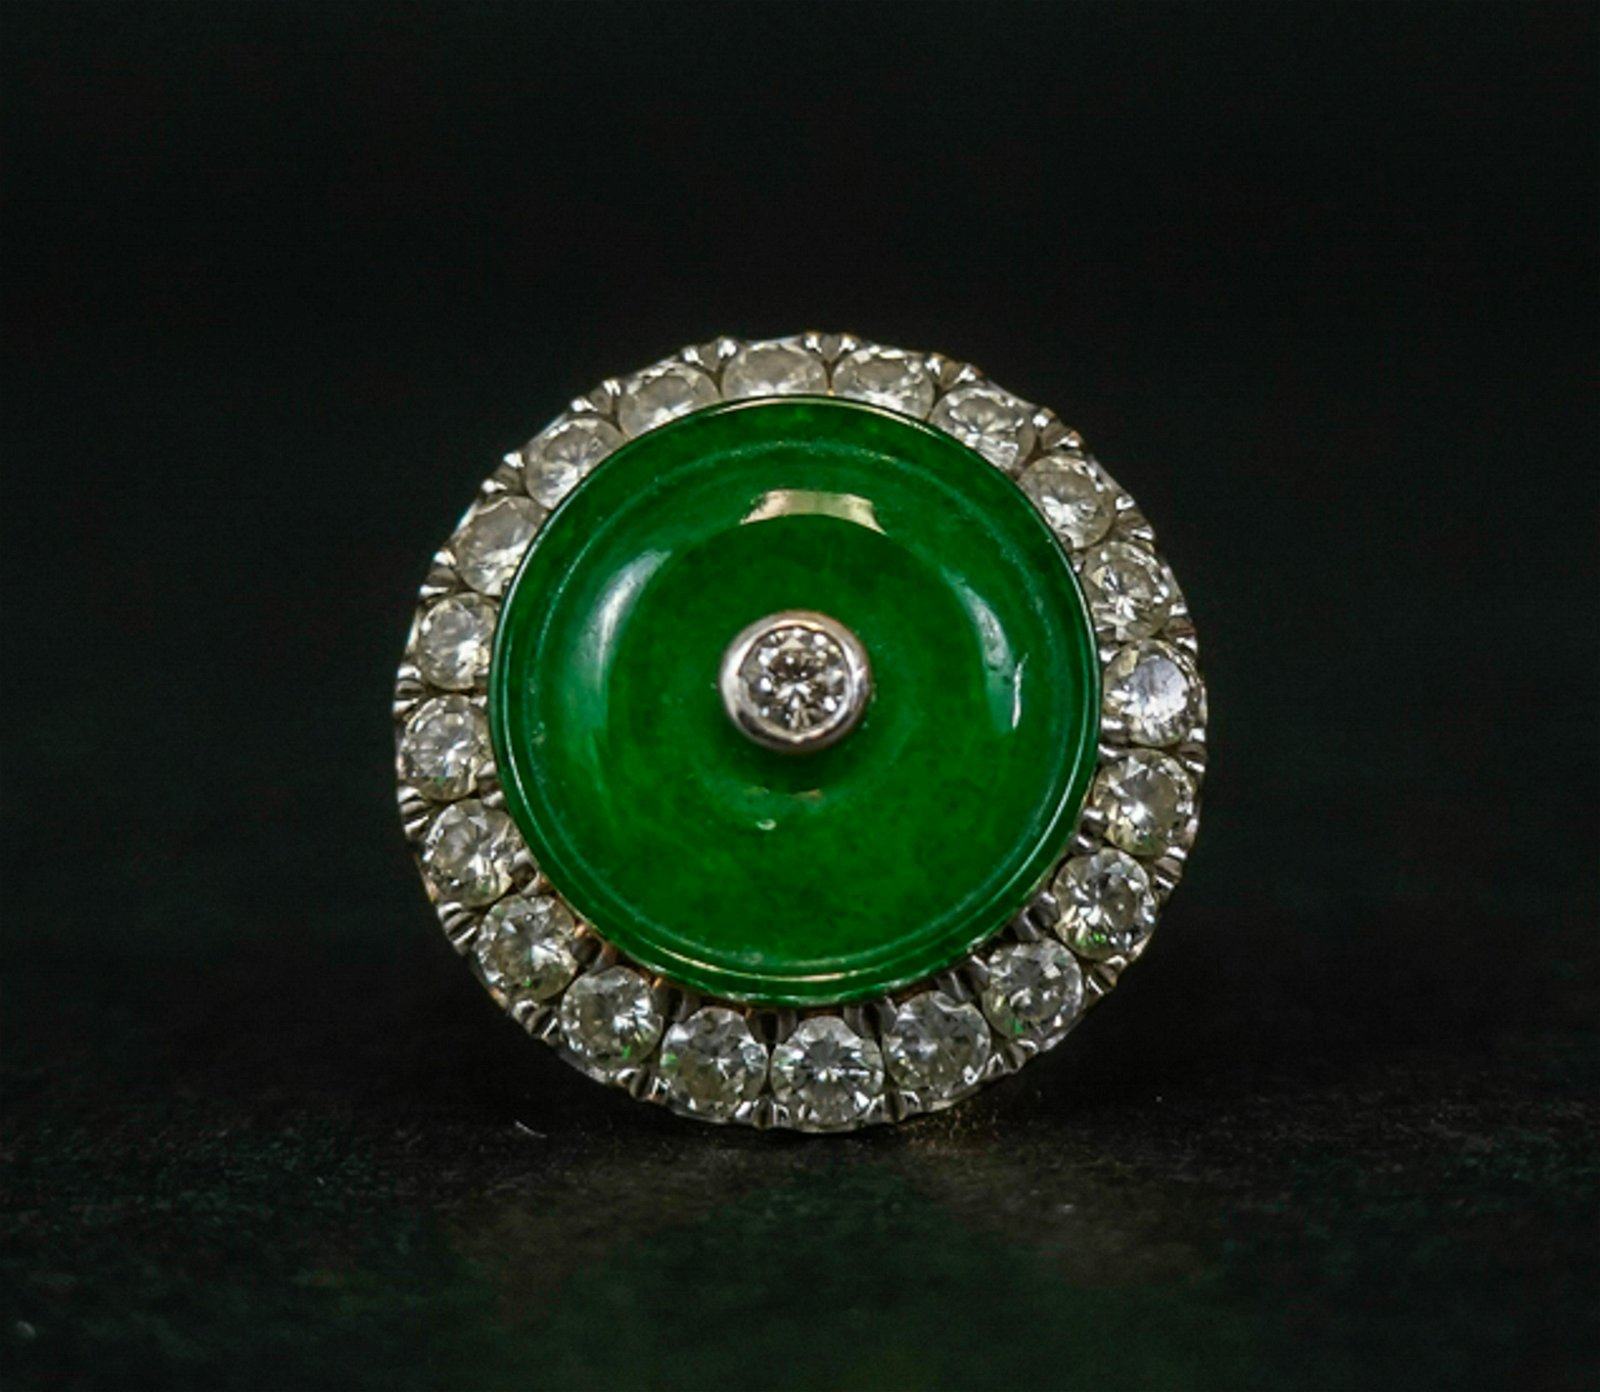 A JADEITE RING EMBEDED WITH DIAMOND